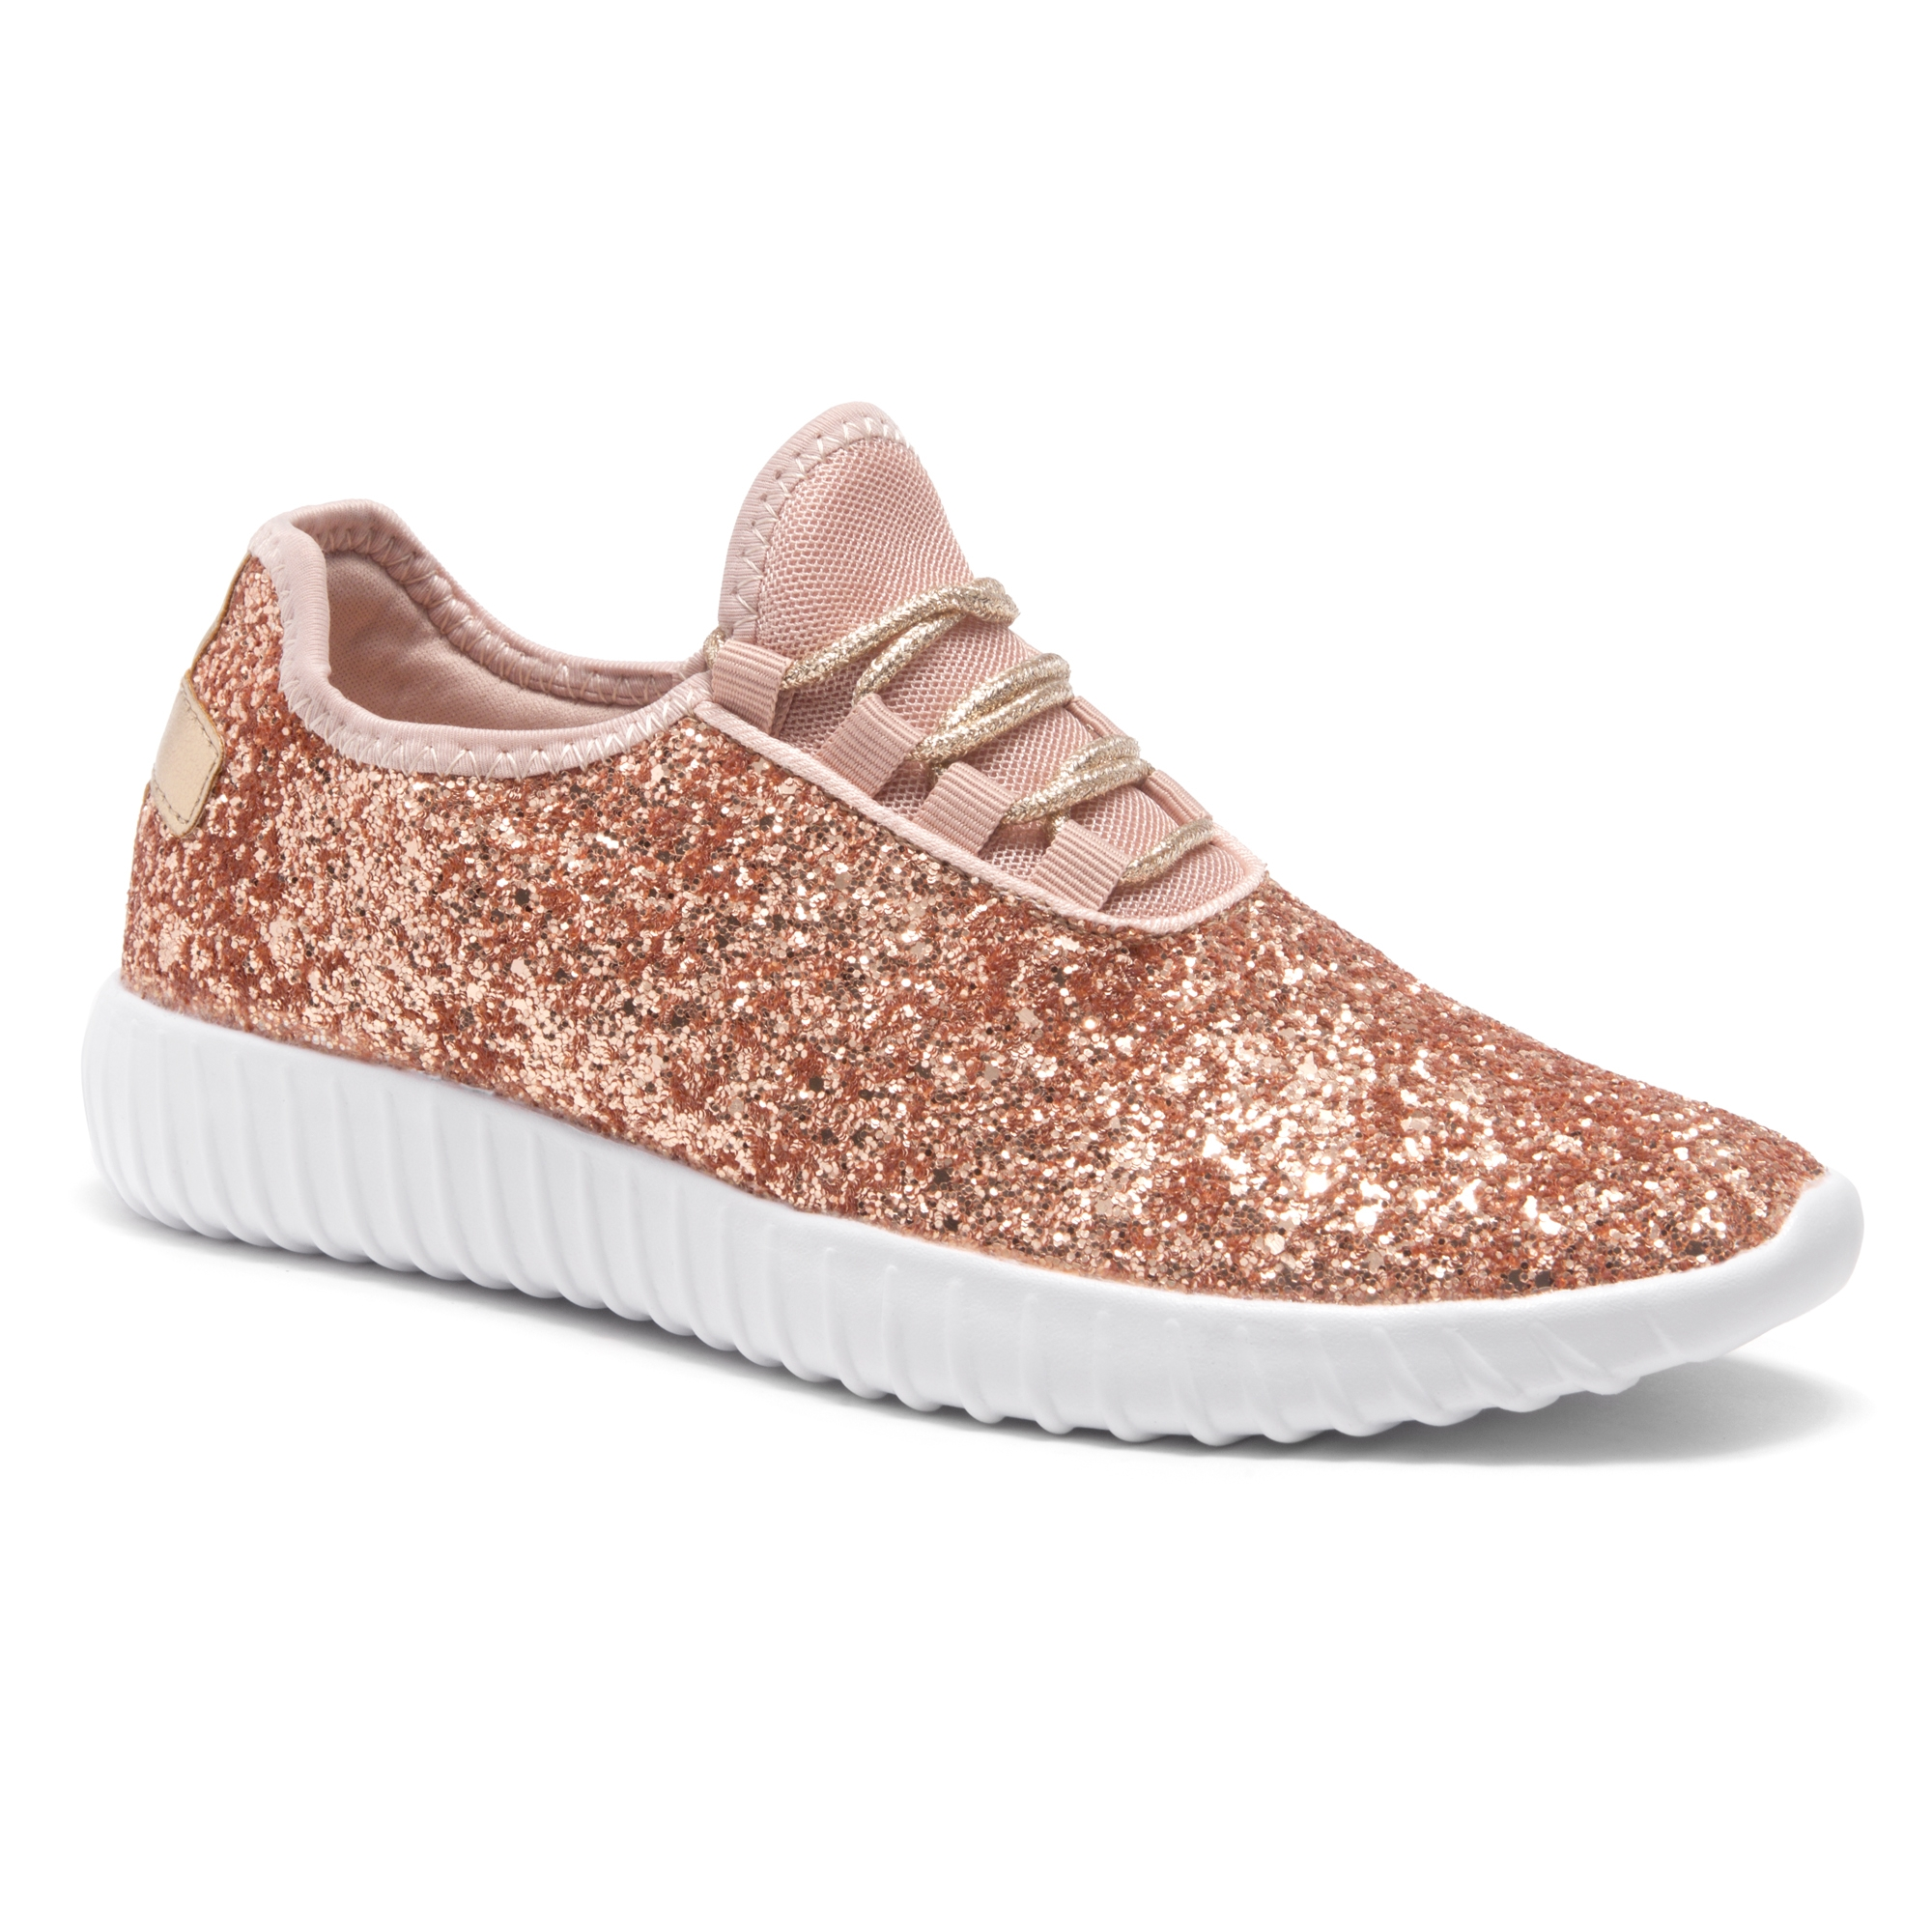 112af2b04ccc HerStyle Moniqie lightly padded insole sneakers (RoseGold)